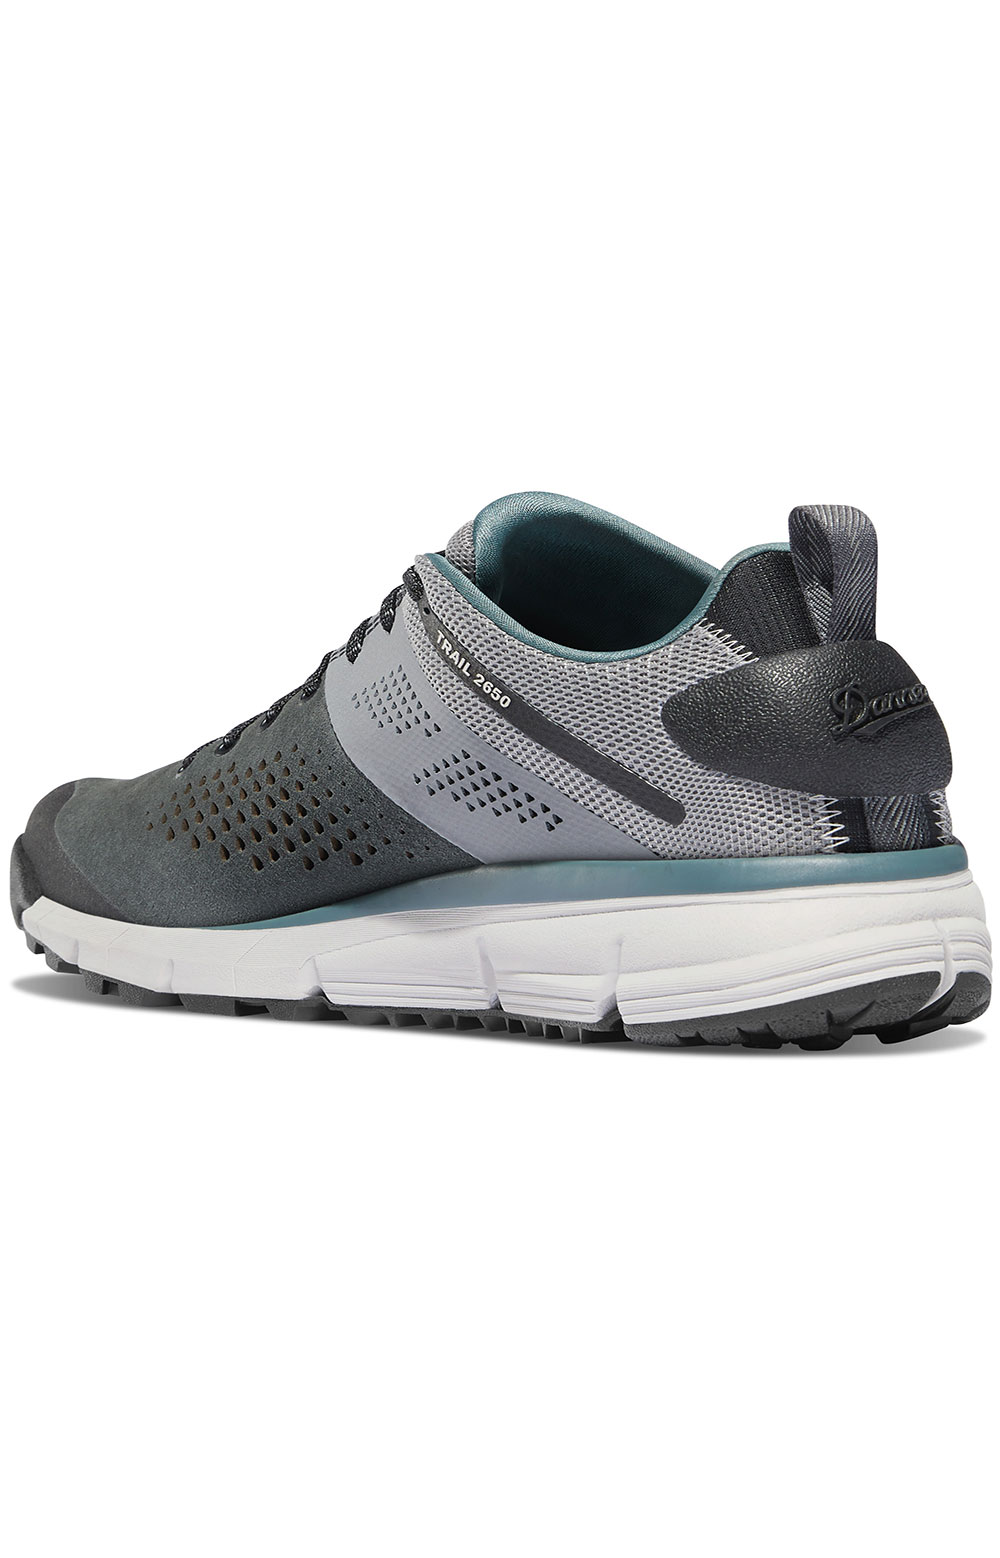 (61282) Trail 2650 Shoes - Charcoal/Goblin Blue 2